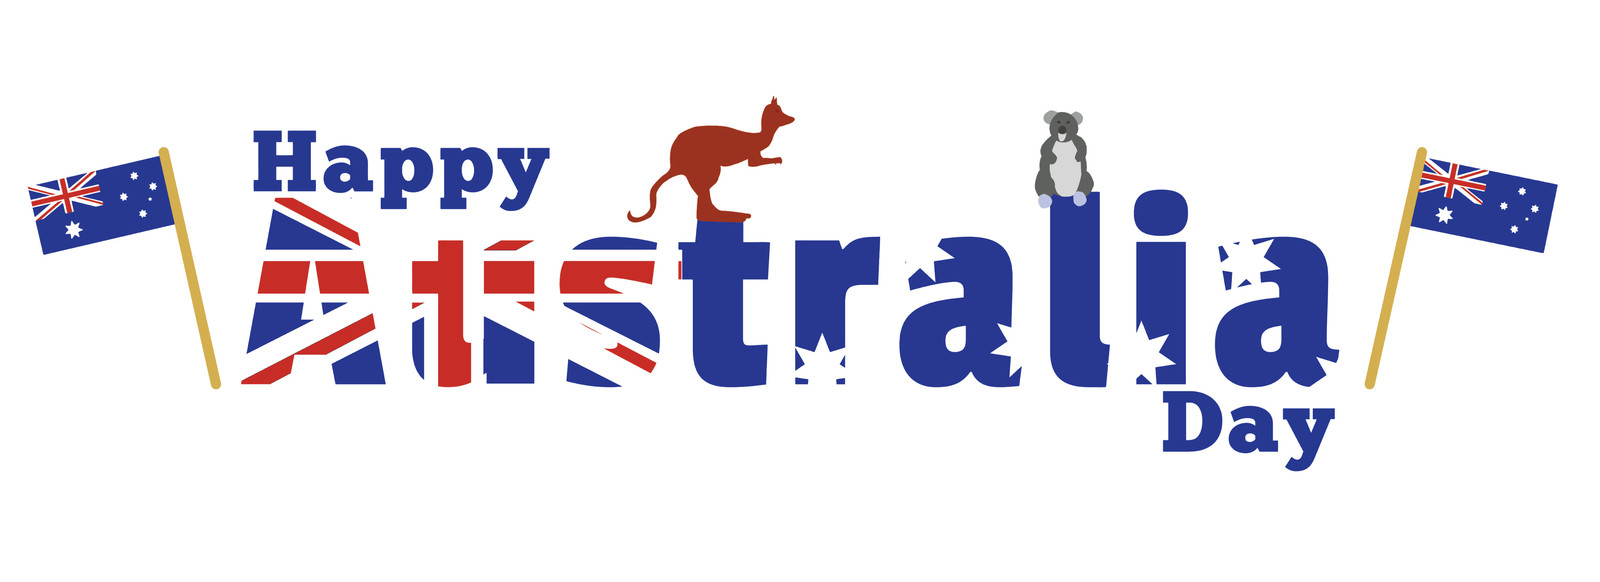 Australia Day Backgrounds, Compatible - PC, Mobile, Gadgets| 1600x582 px